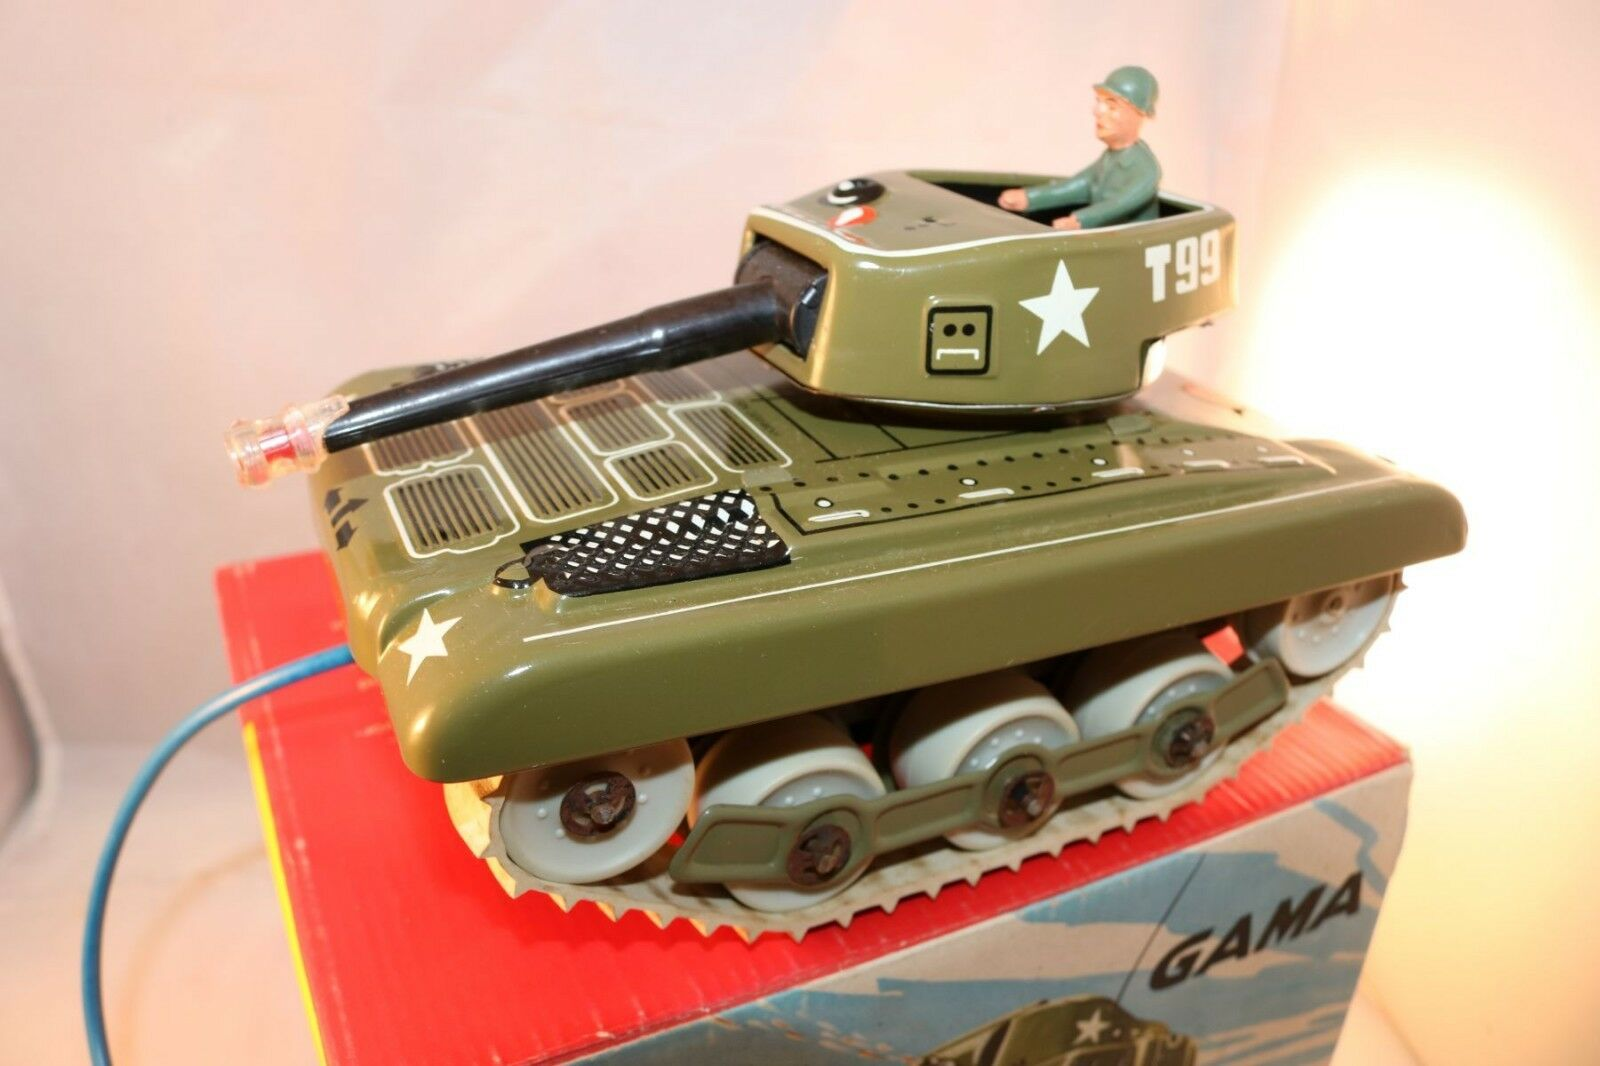 Gama 9938 tank blech in working order near mint in box all original mit OVP